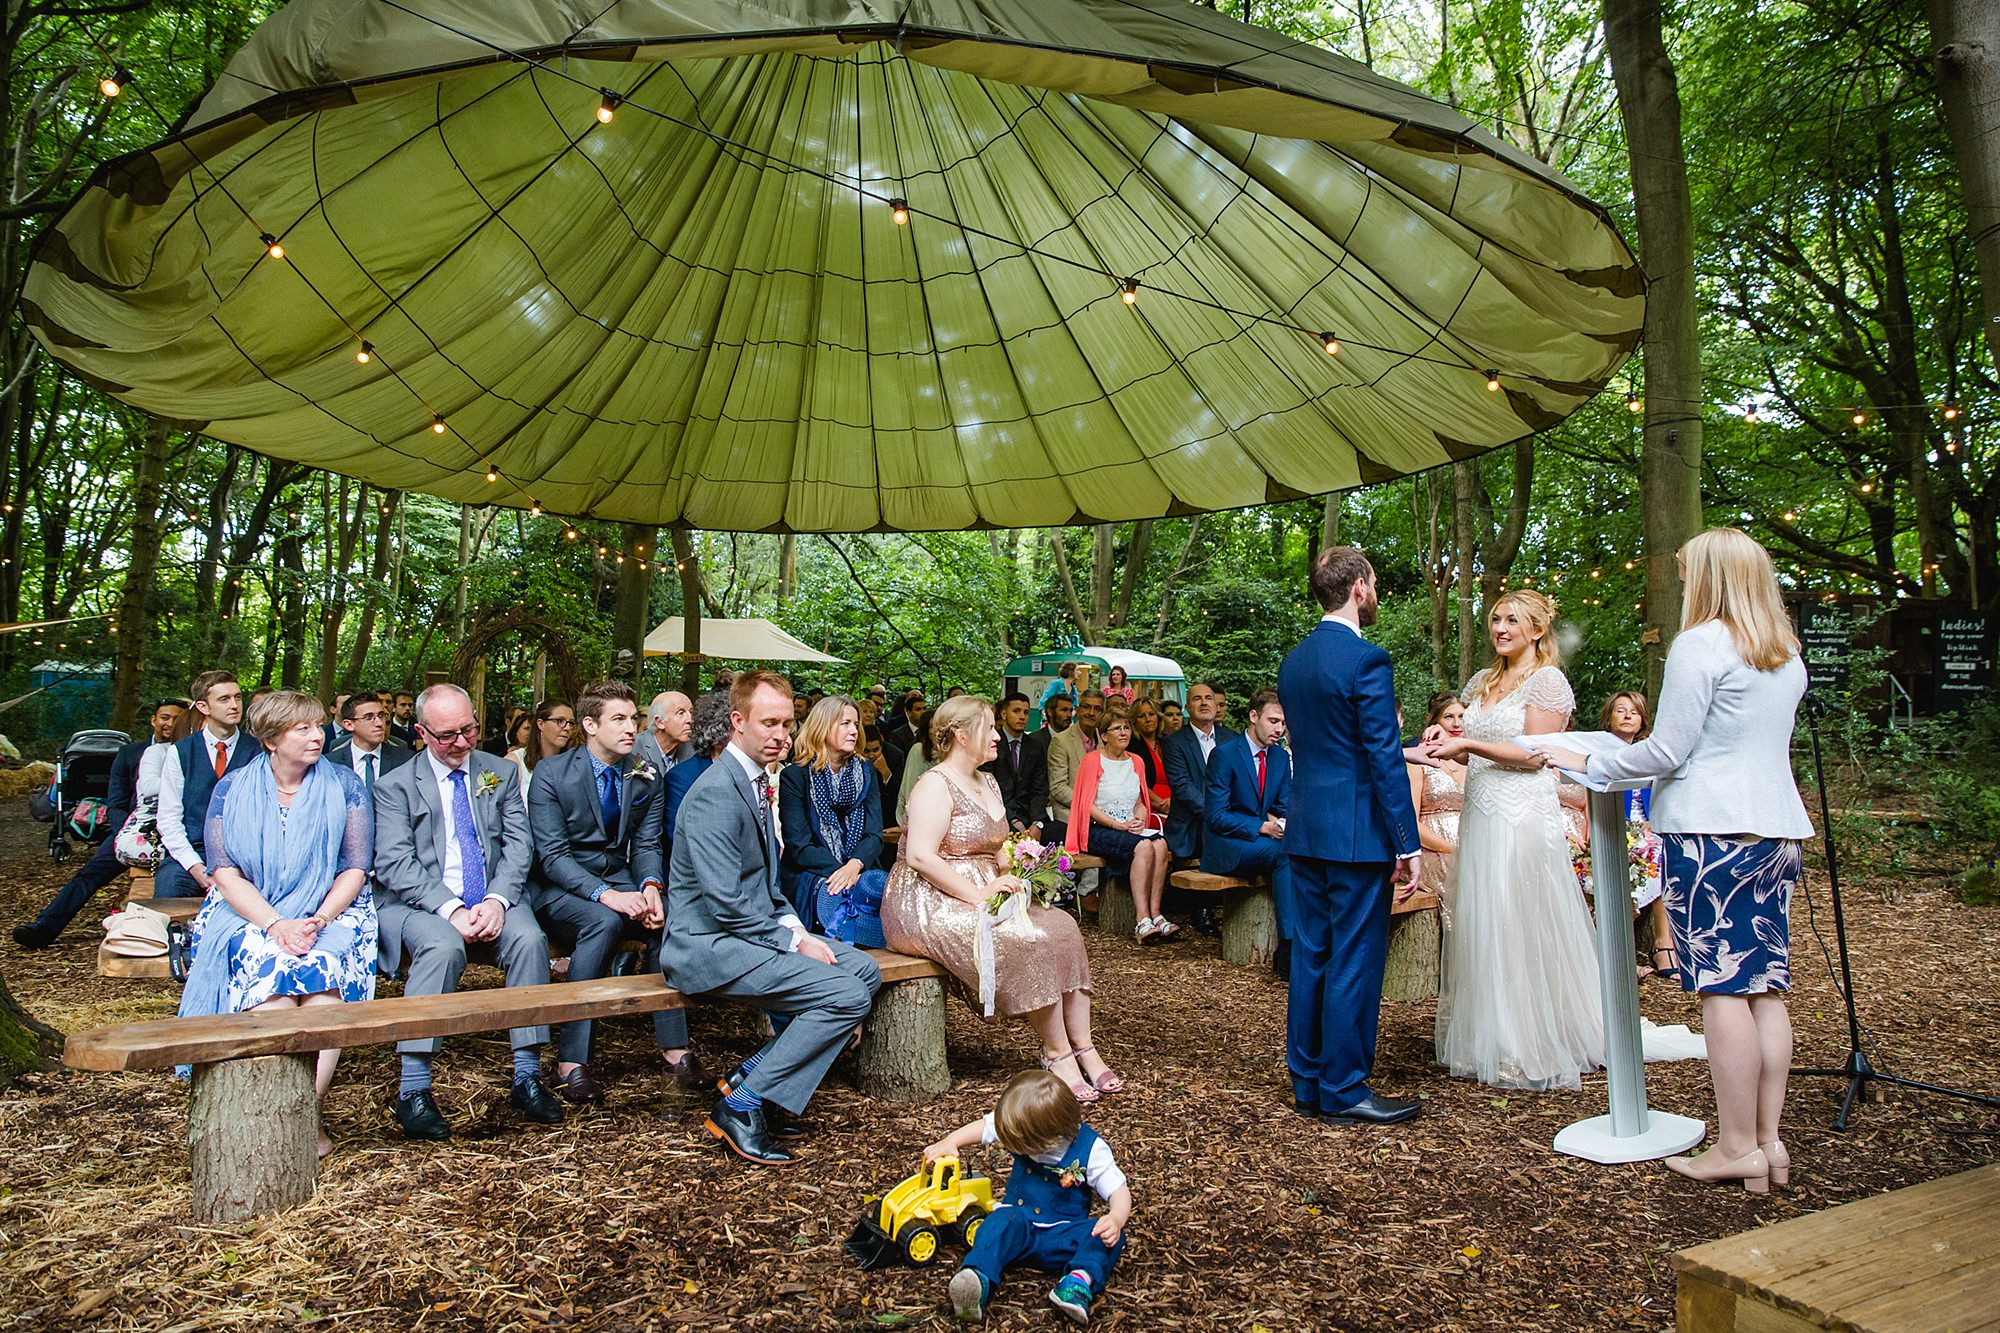 Woodland Weddings Tring bride giving ring to groom